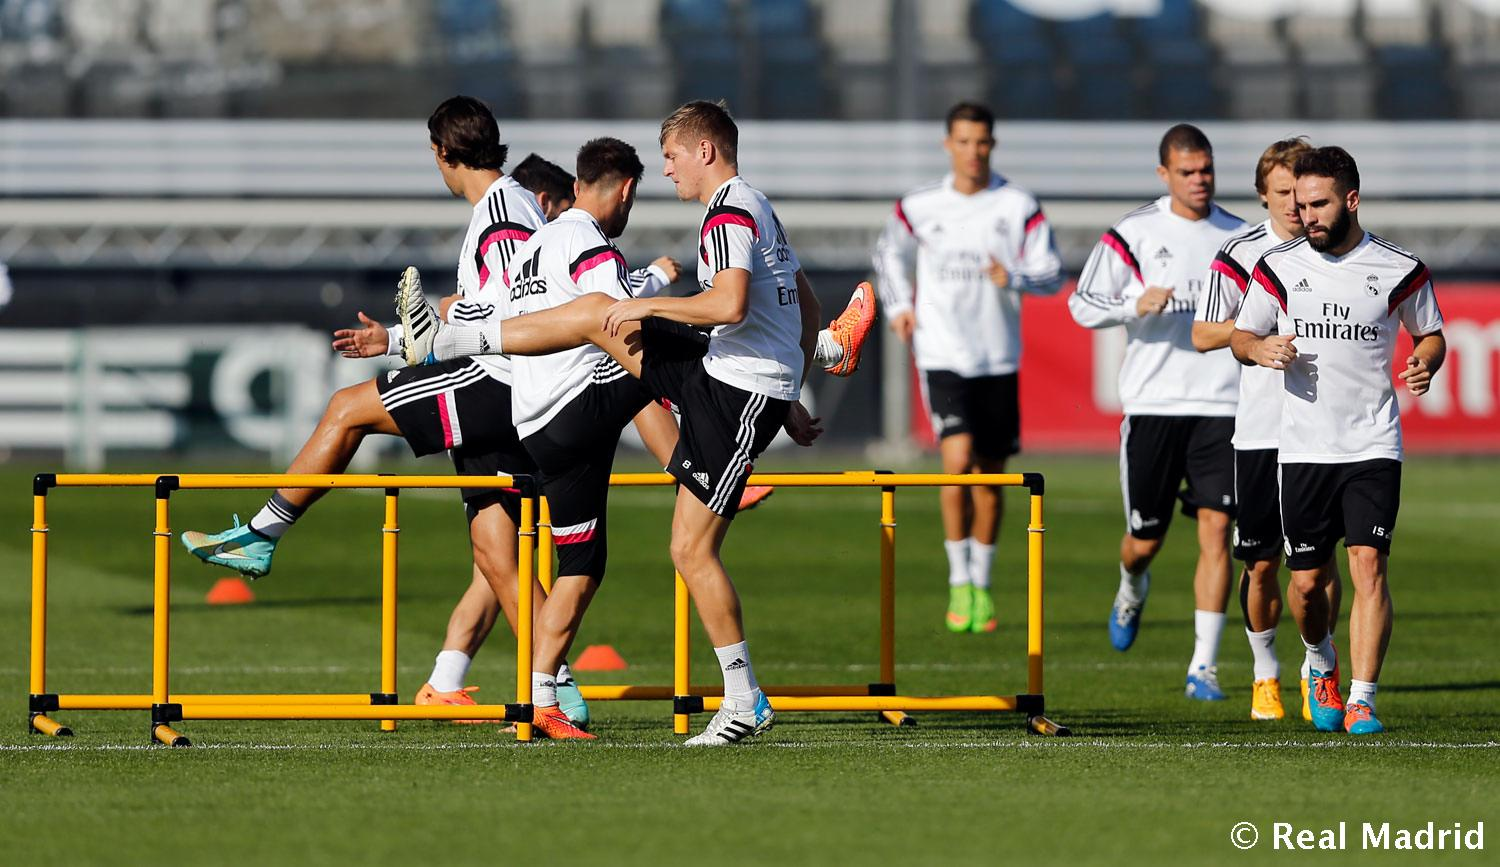 Real Madrid - Entrenamiento del Real Madrid - 16-10-2014